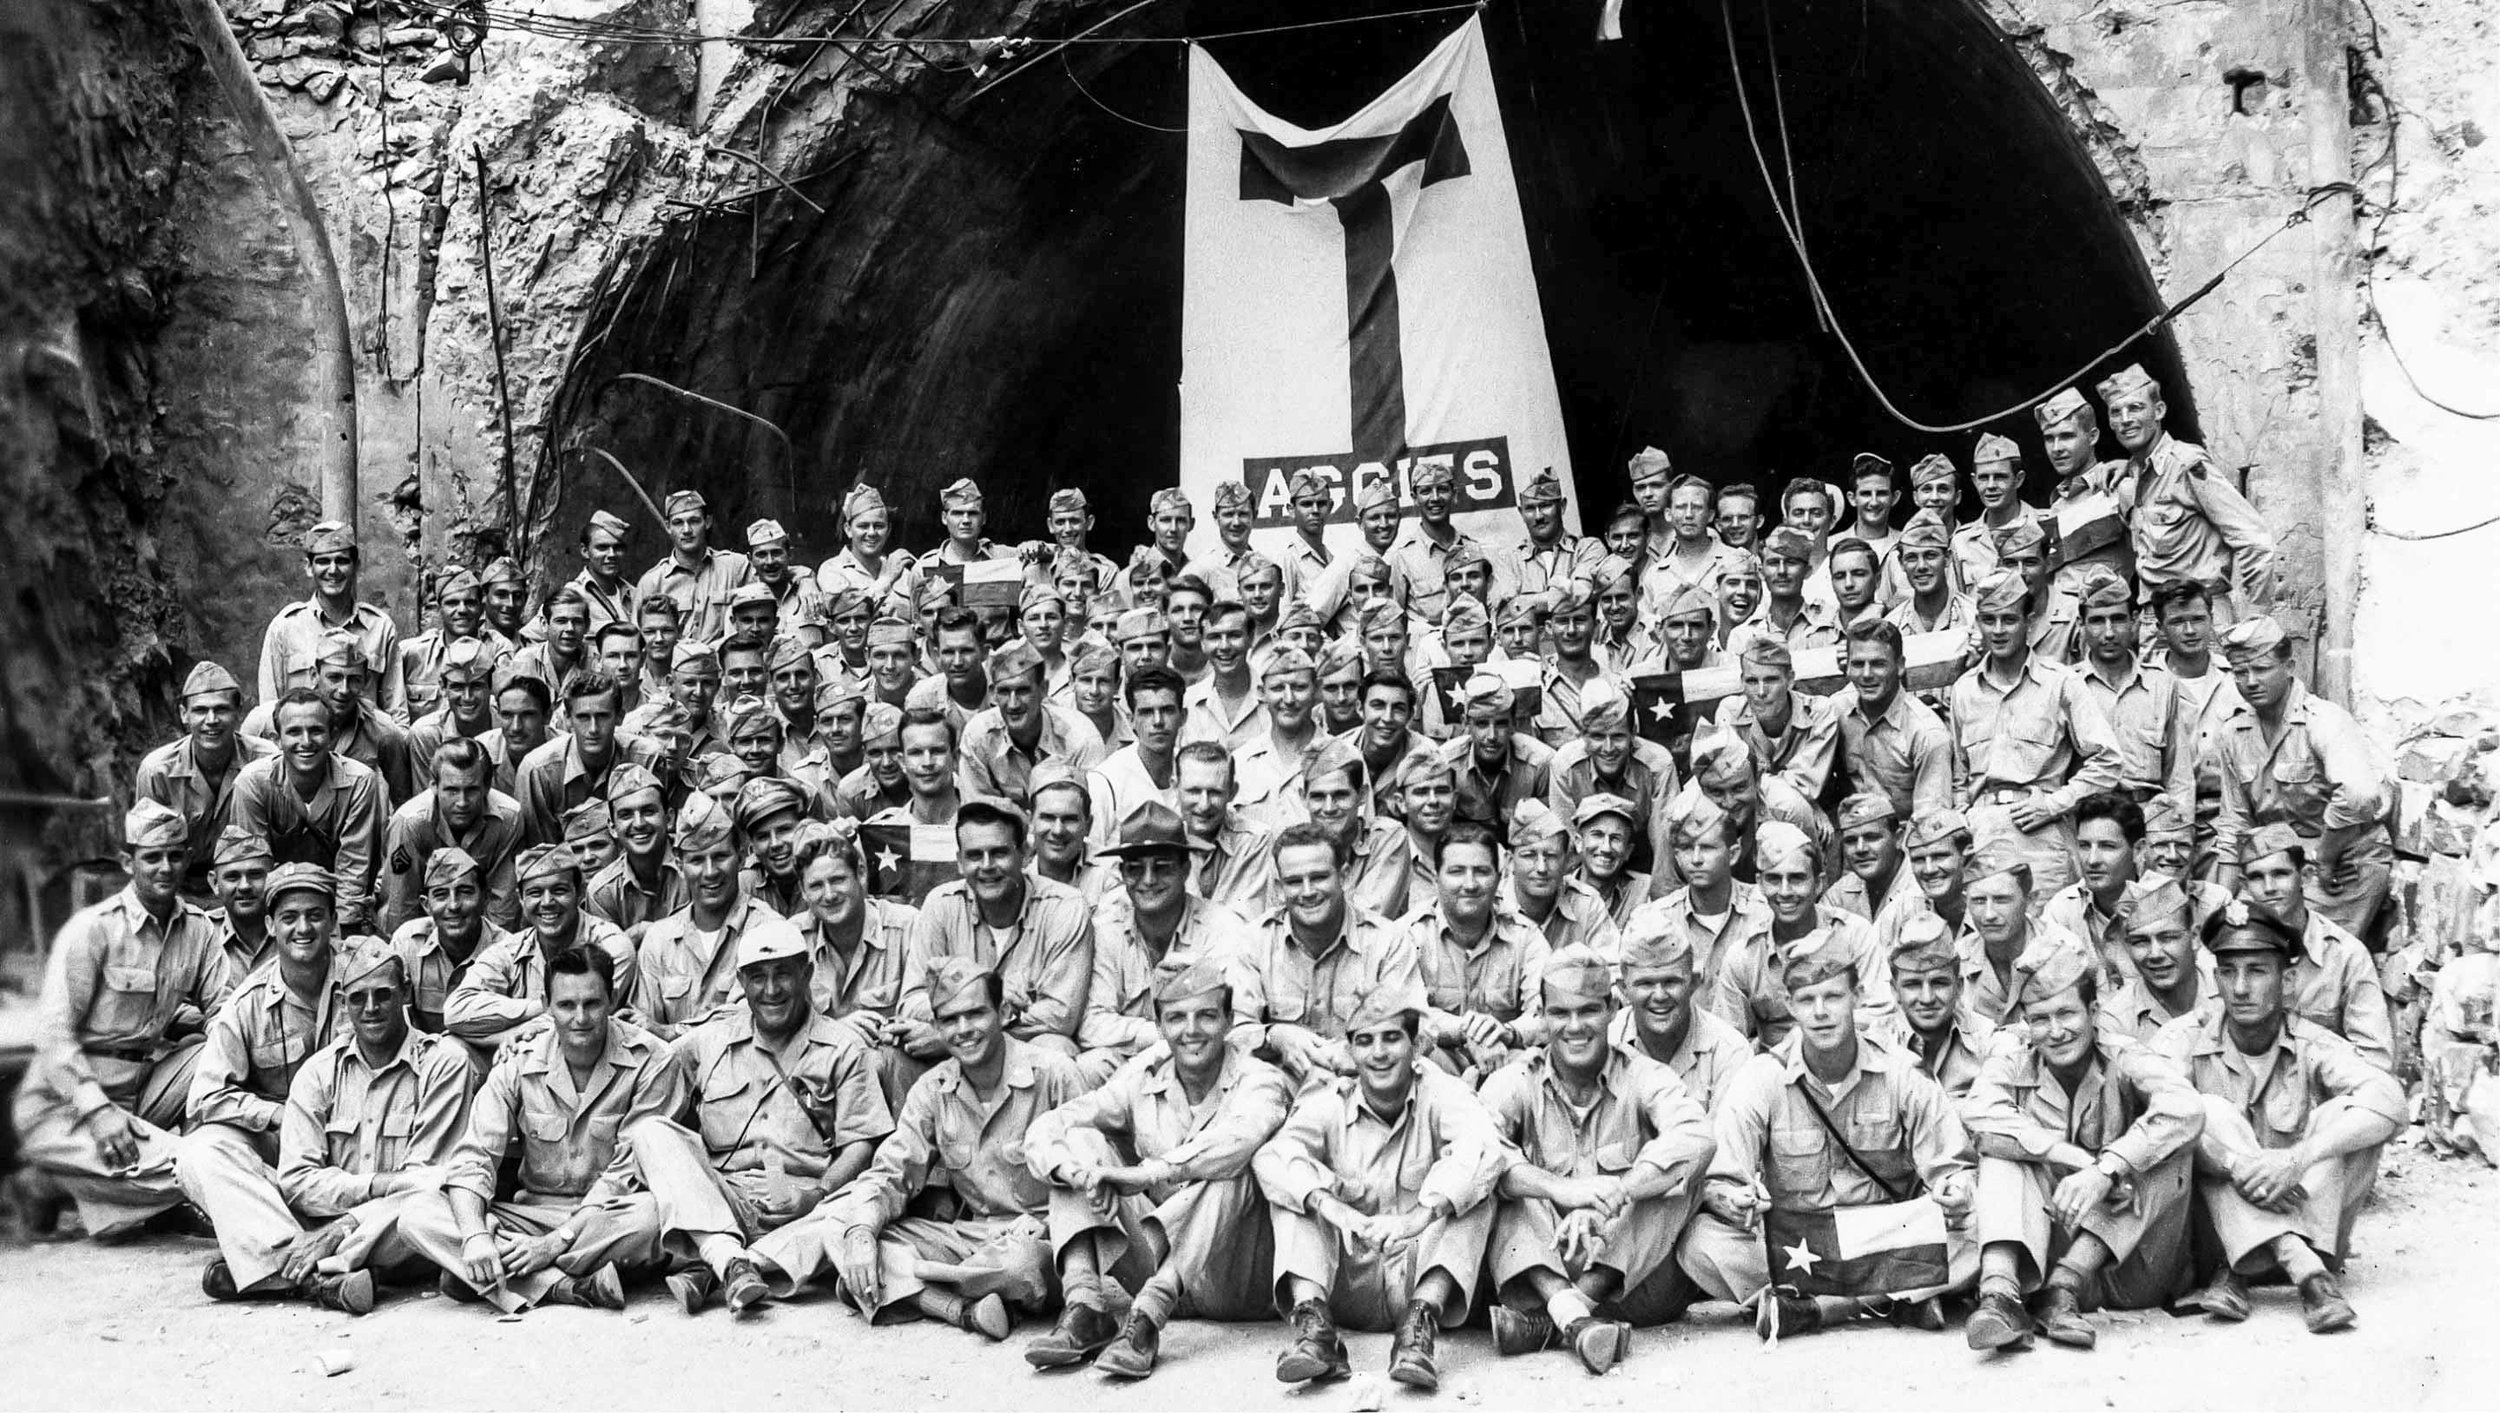 """In 1946, Aggies held Muster at the mouth of the Malinta Tunnel on the island of Corregidor to honor those who lost their lives defending the island in 1942.  Pg. 216, """"Texas Aggies Go To War"""""""